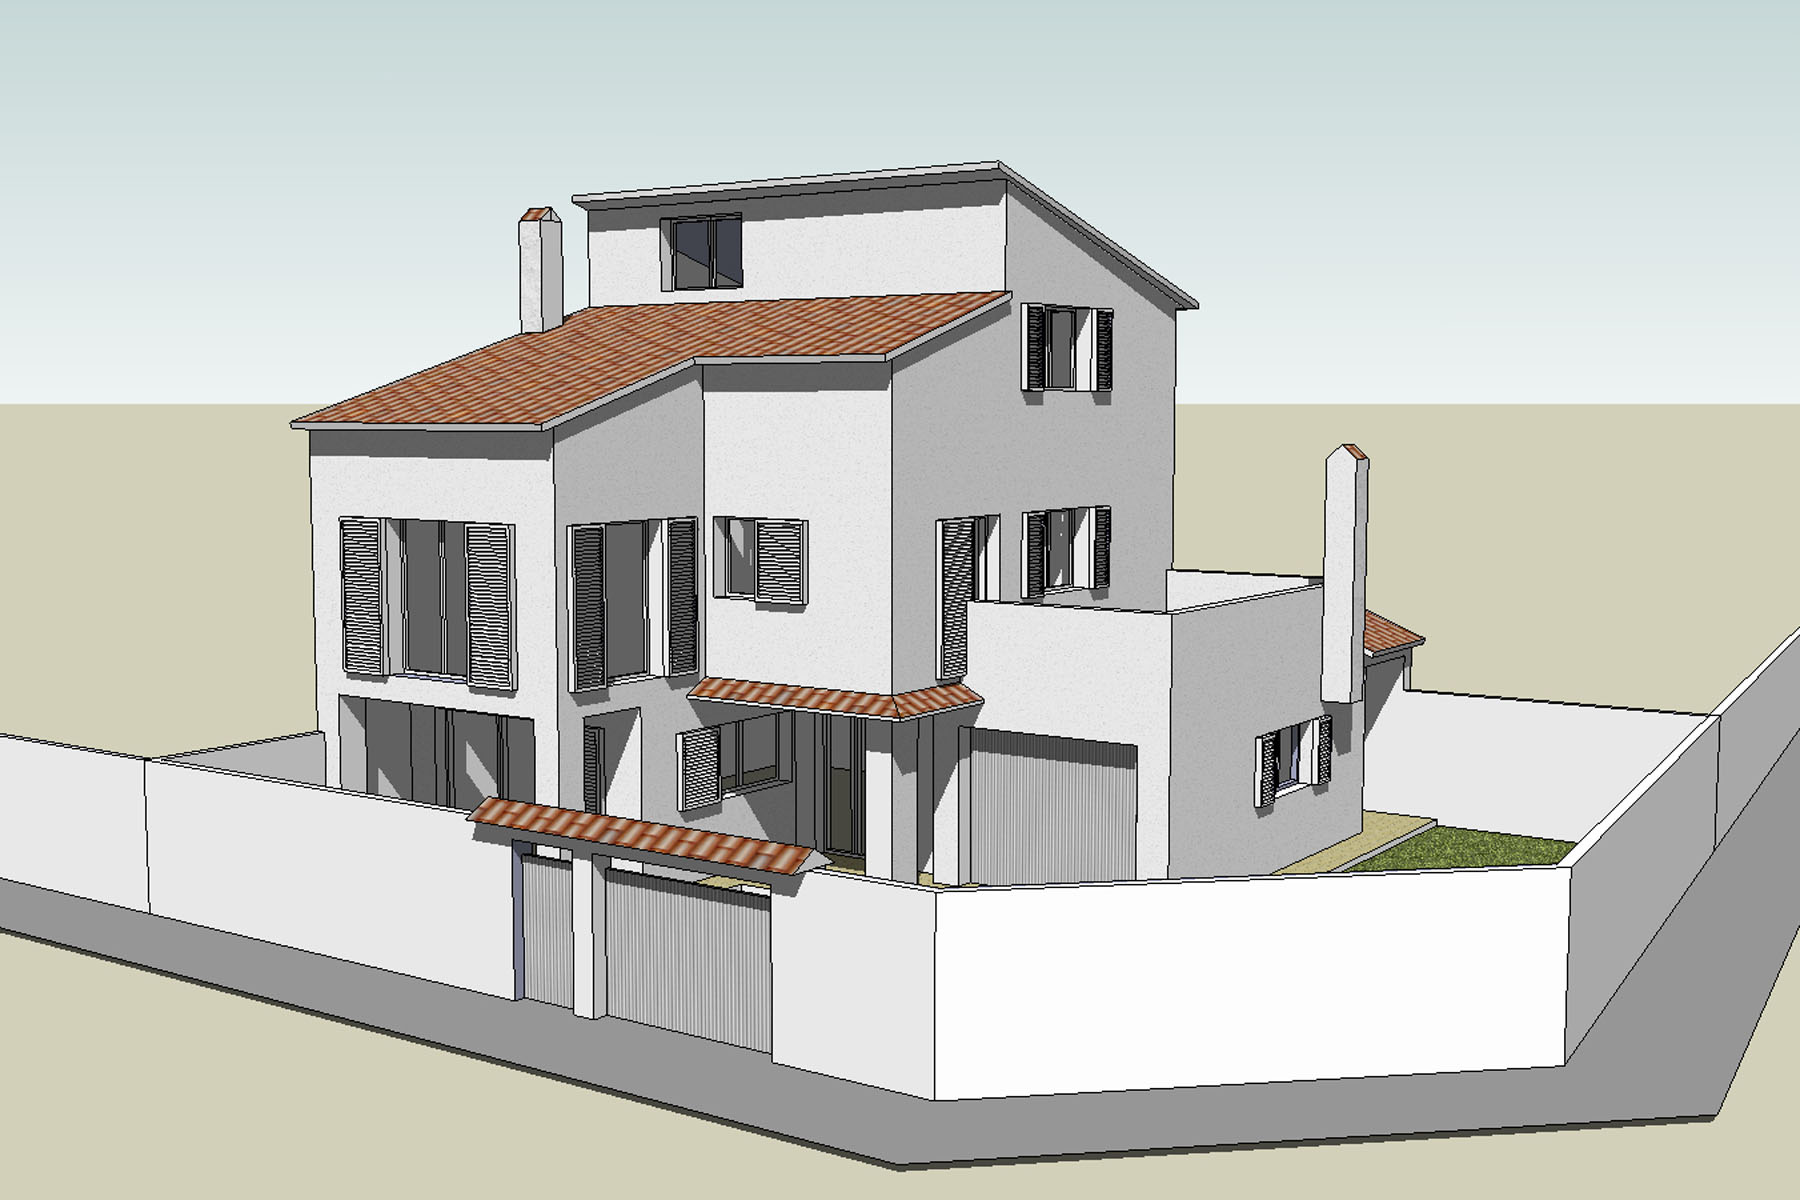 Single family detached house expansion in Carrer de Sitges Sant Pere de Ribes